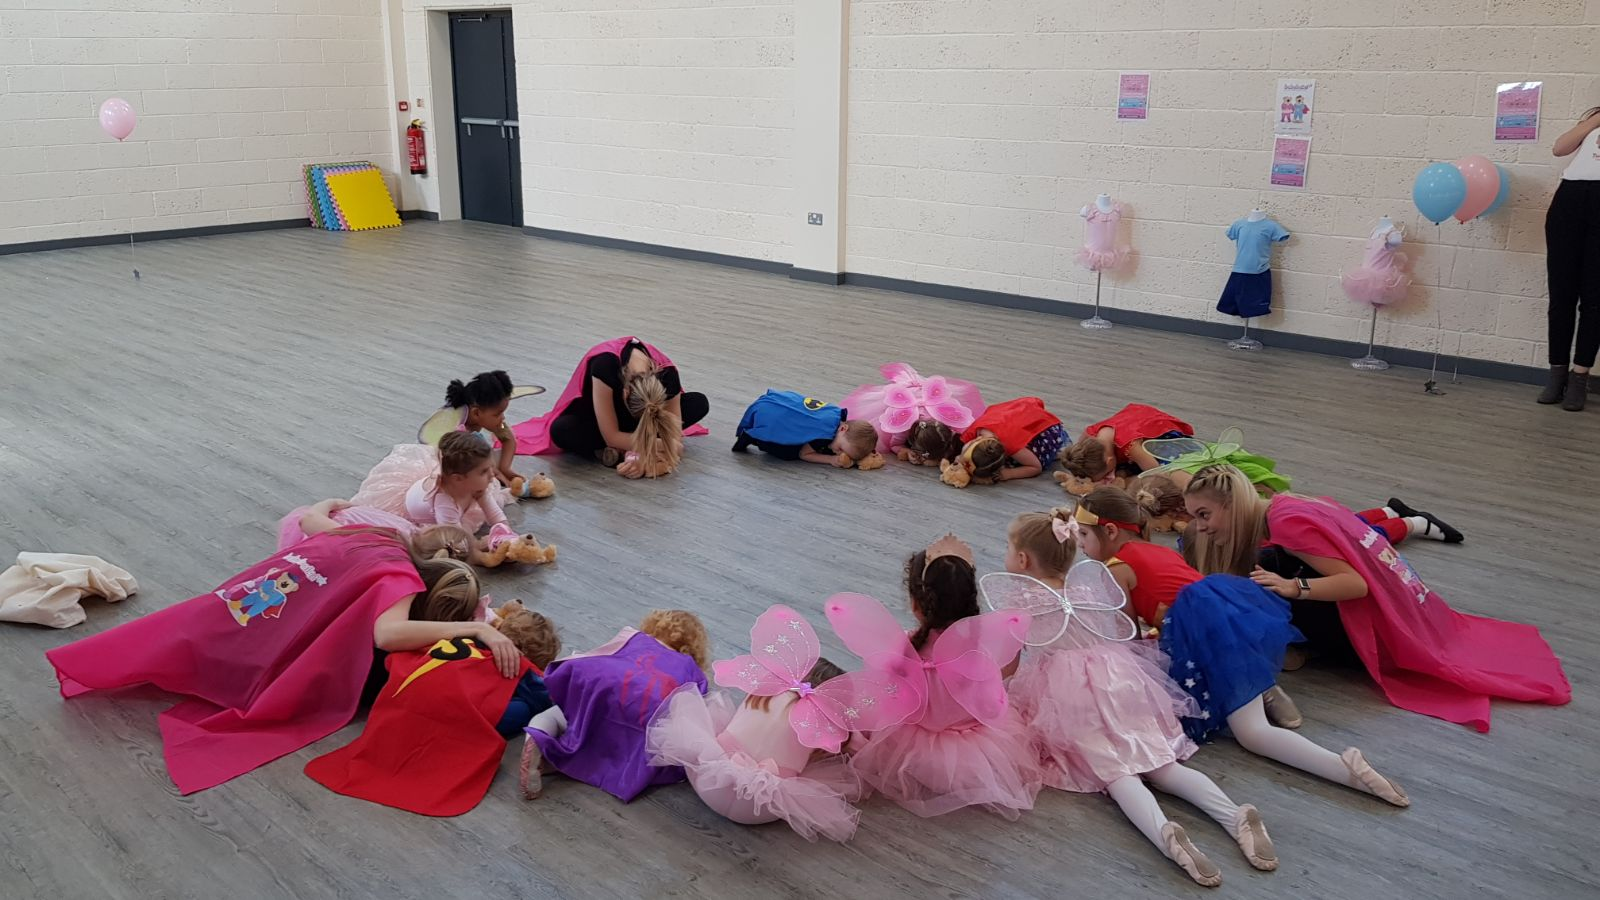 'The end of our babyballet class' at babyballet® Biggleswade during Children's Activities Week!